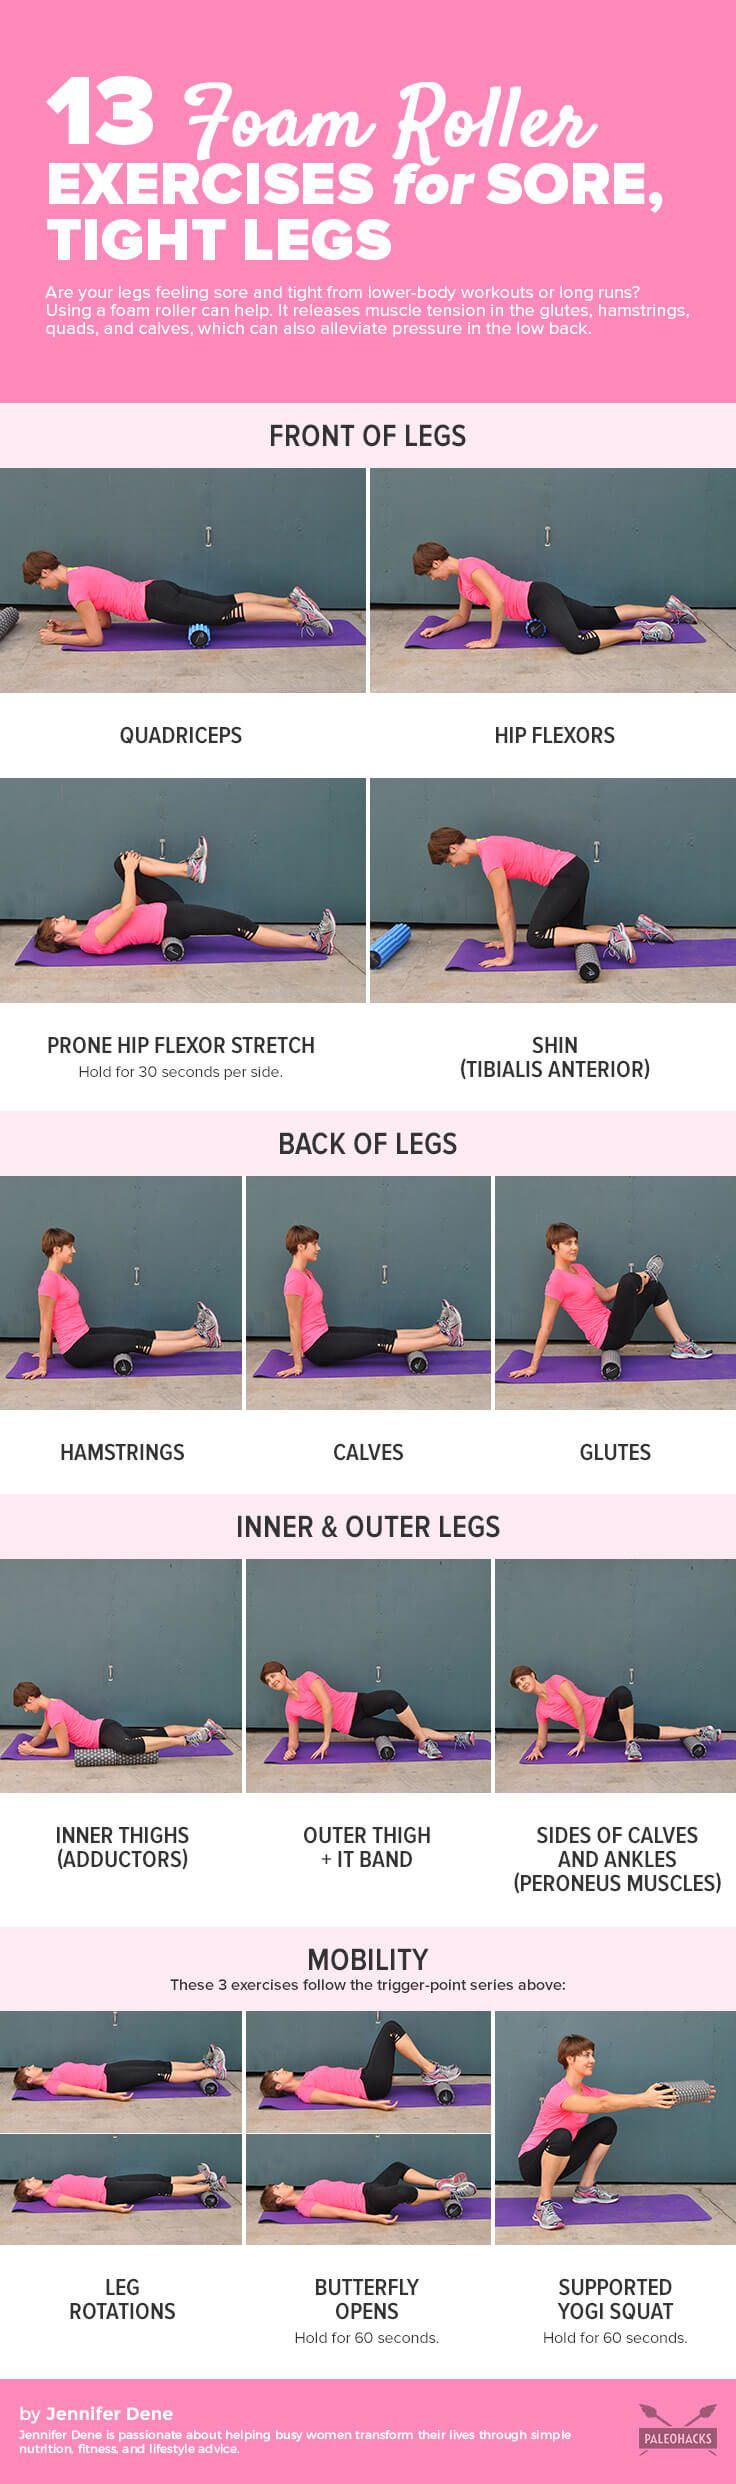 13 Foam Roller Exercises For Sore Tight Legs